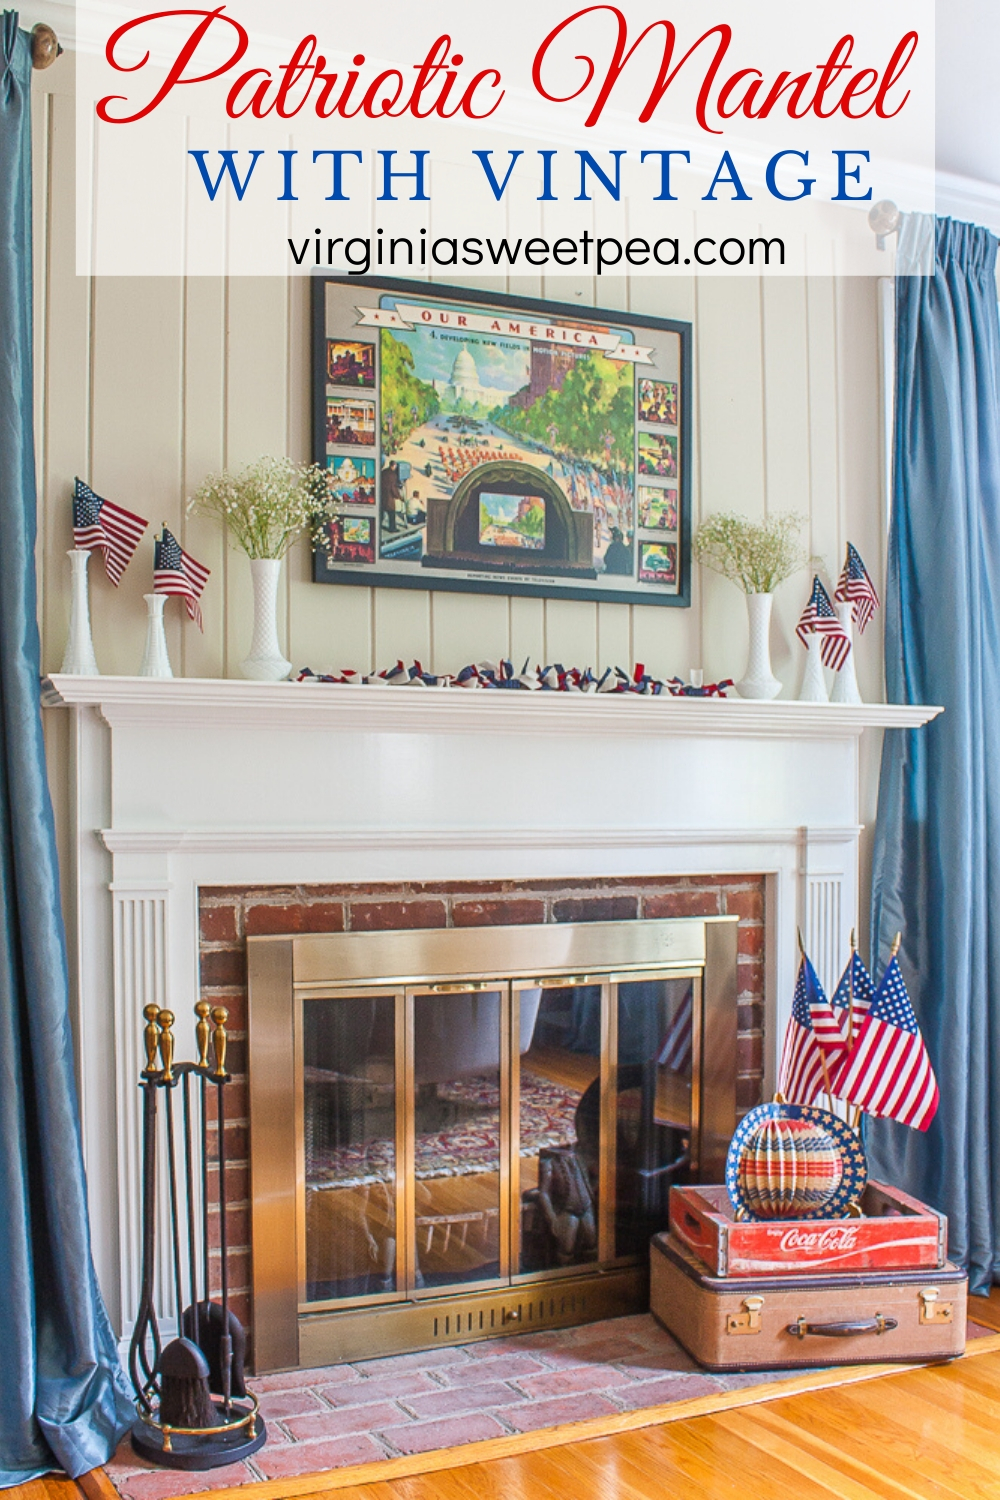 Patriotic Mantel with Vintage - American flags in milk glass, a 1943 Coca-Cola poster, plus other vintage items decorate a mantel for patriotic holidays. #patrioticdecor #patrioticmantel #4thofjulydecor #4thofjulymantel #vintagedecor via @spaula